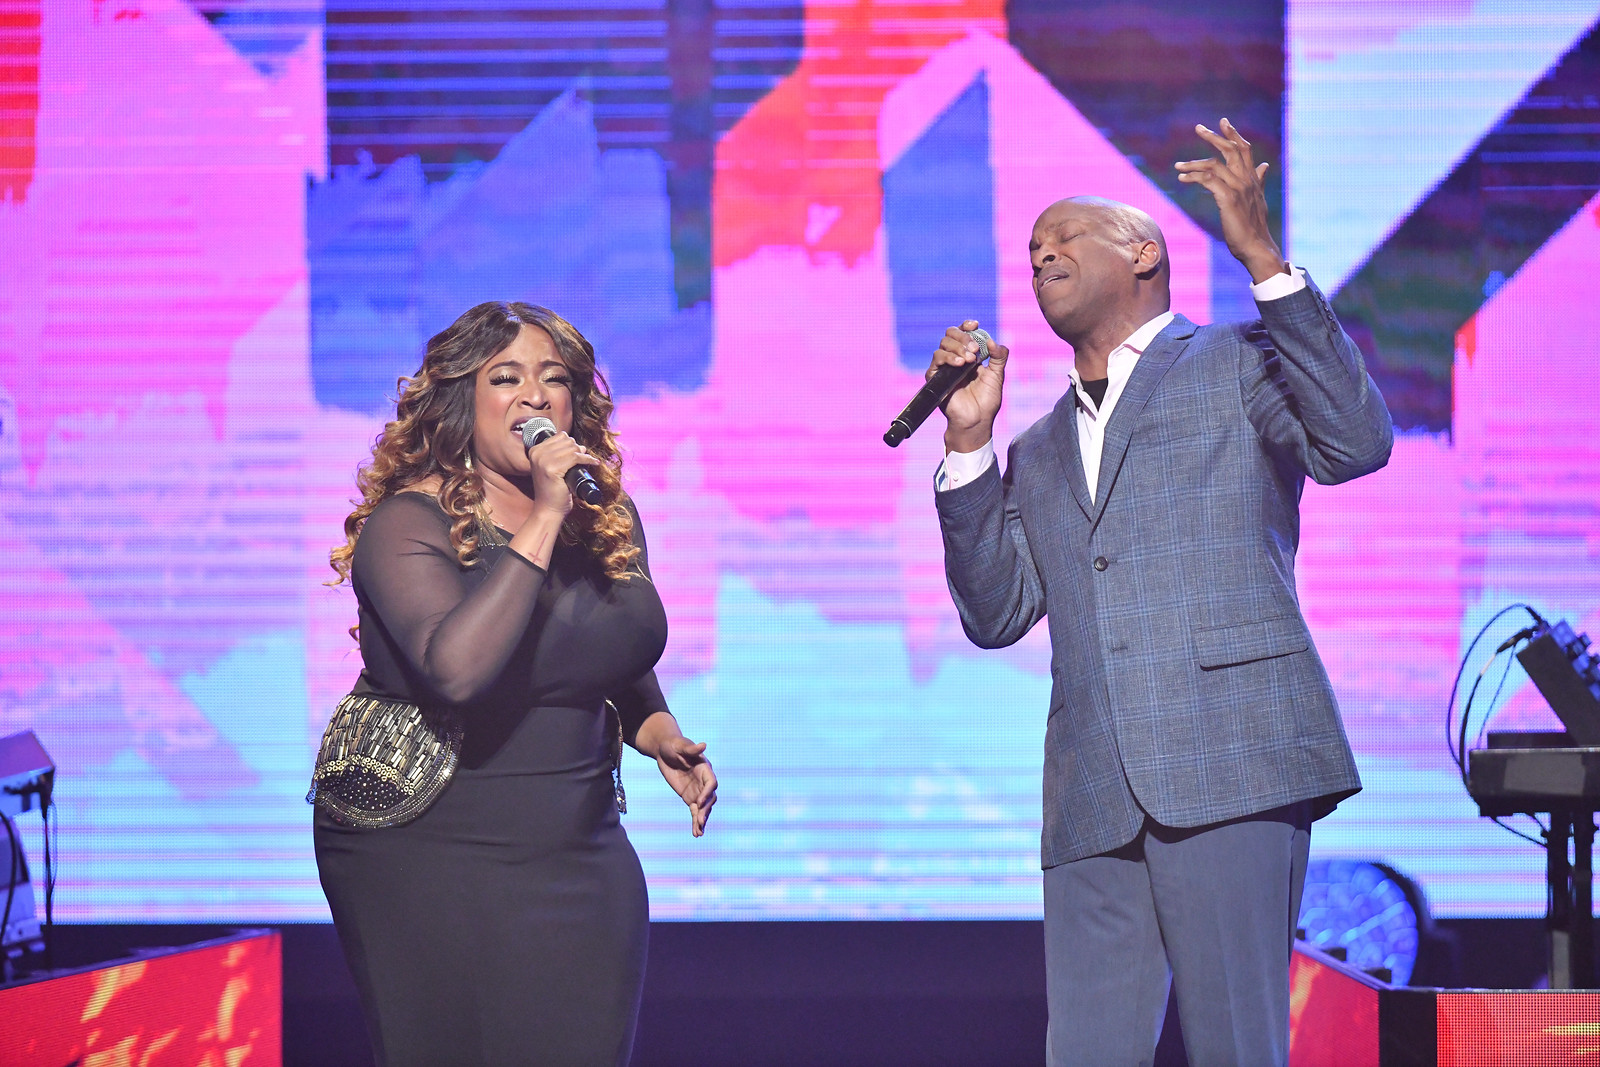 Kierra Sheard and Donnie McClurkin sing